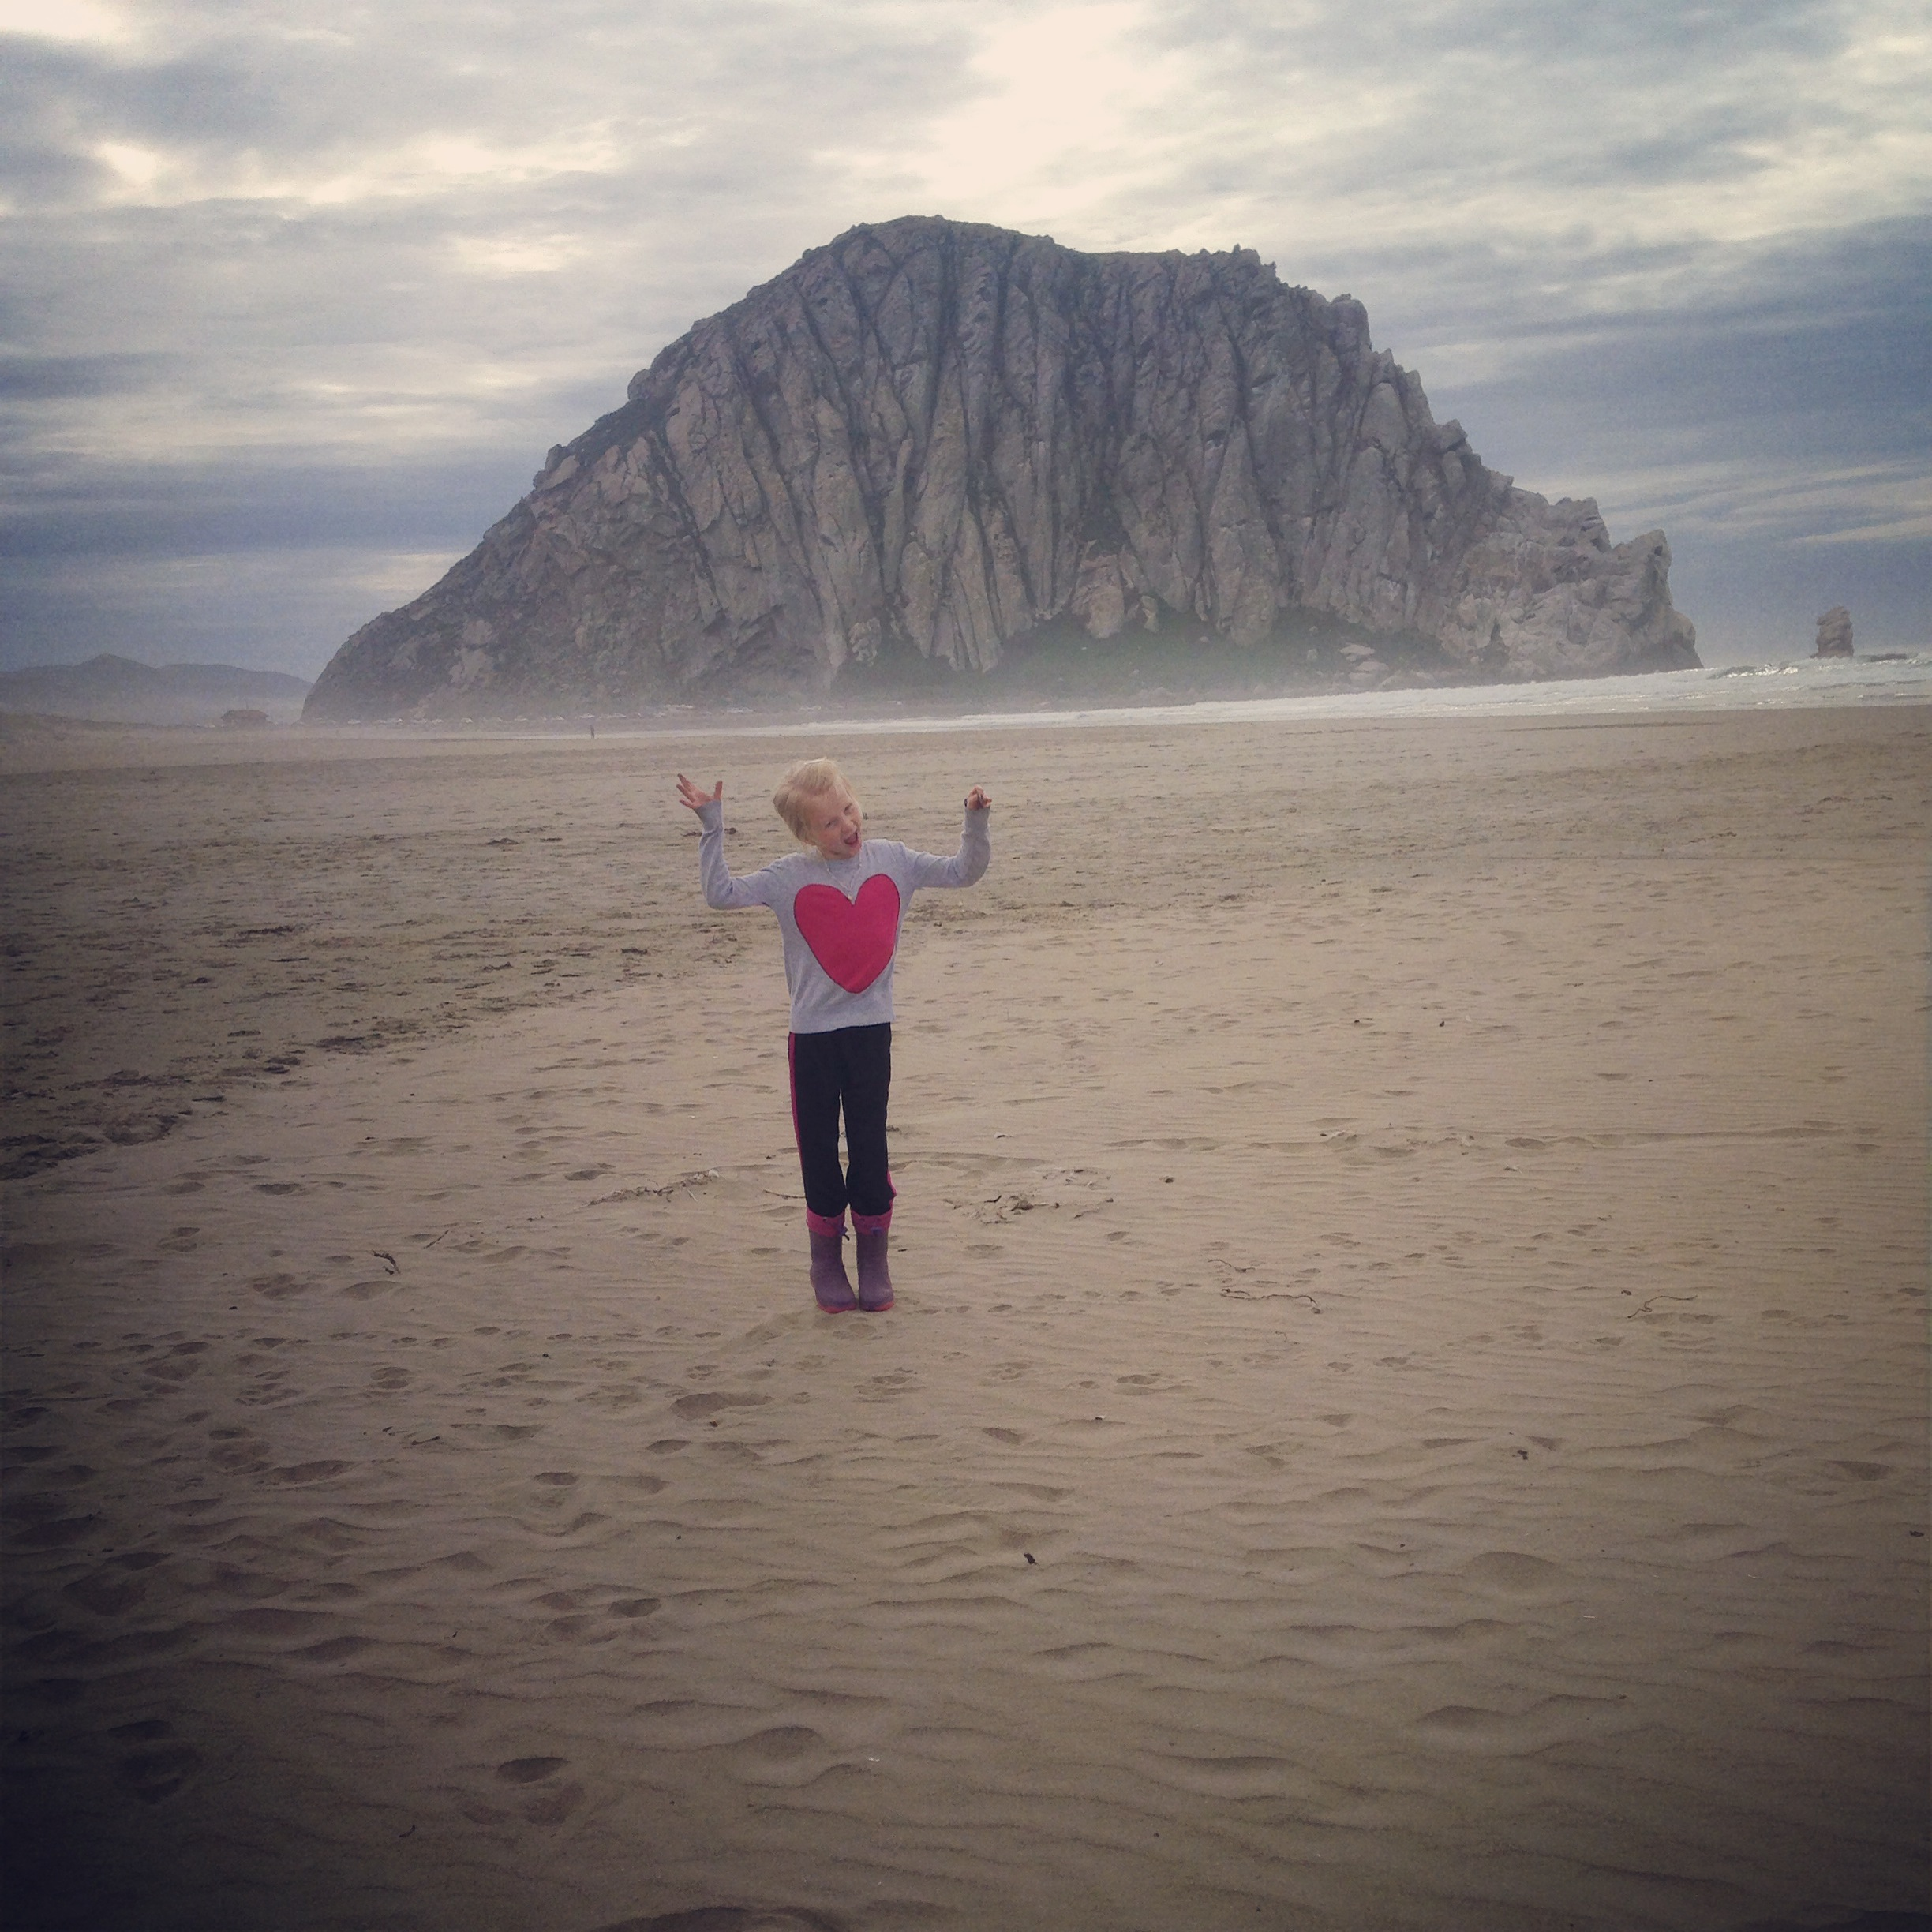 Our RV park in Morro Bay was steps away from this!